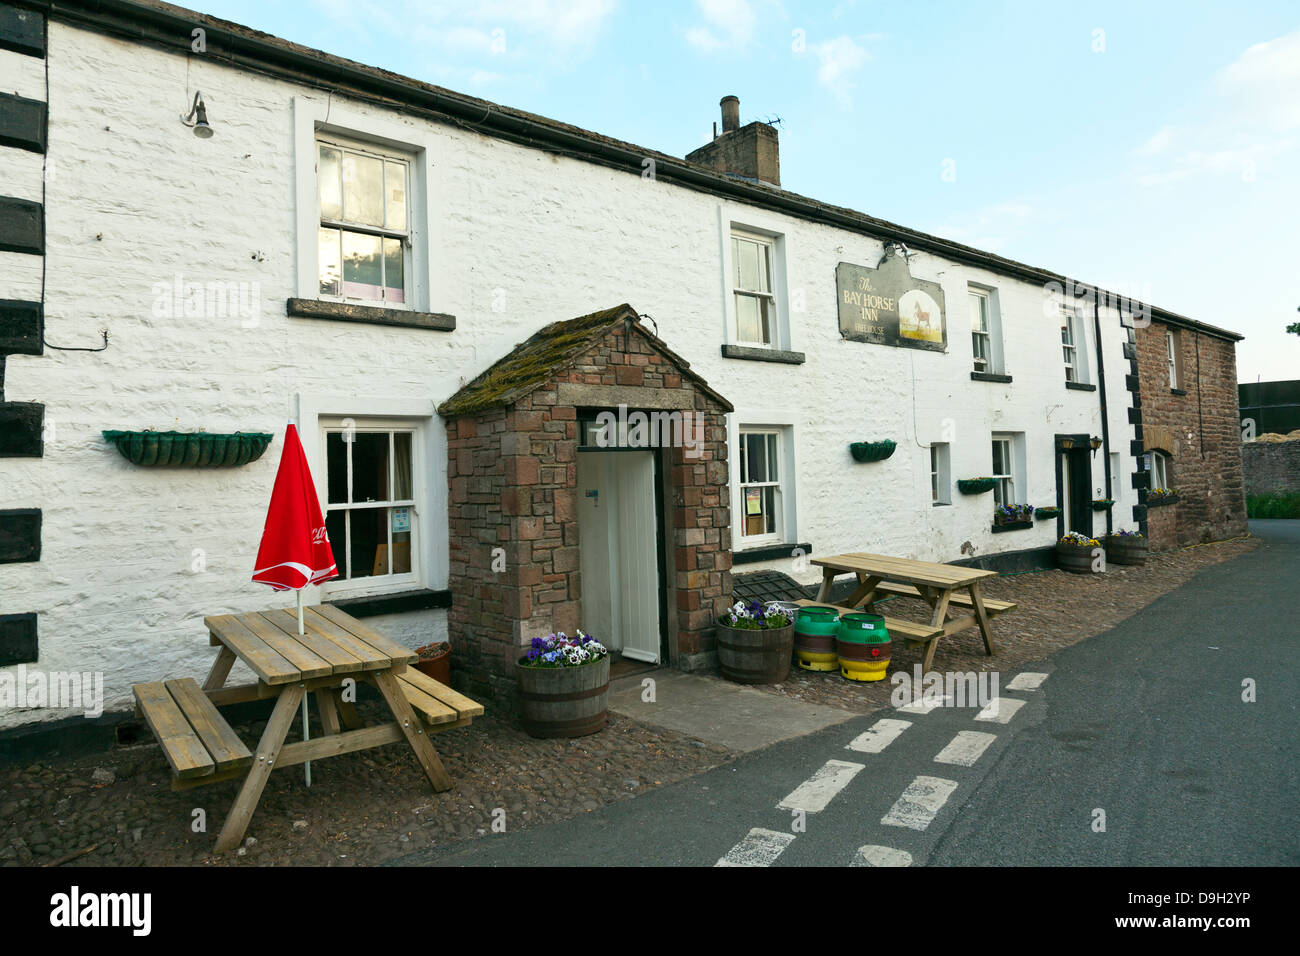 The bay horse inn Winton pub  Lake District National Park, Cumbria, England, UK - Stock Image